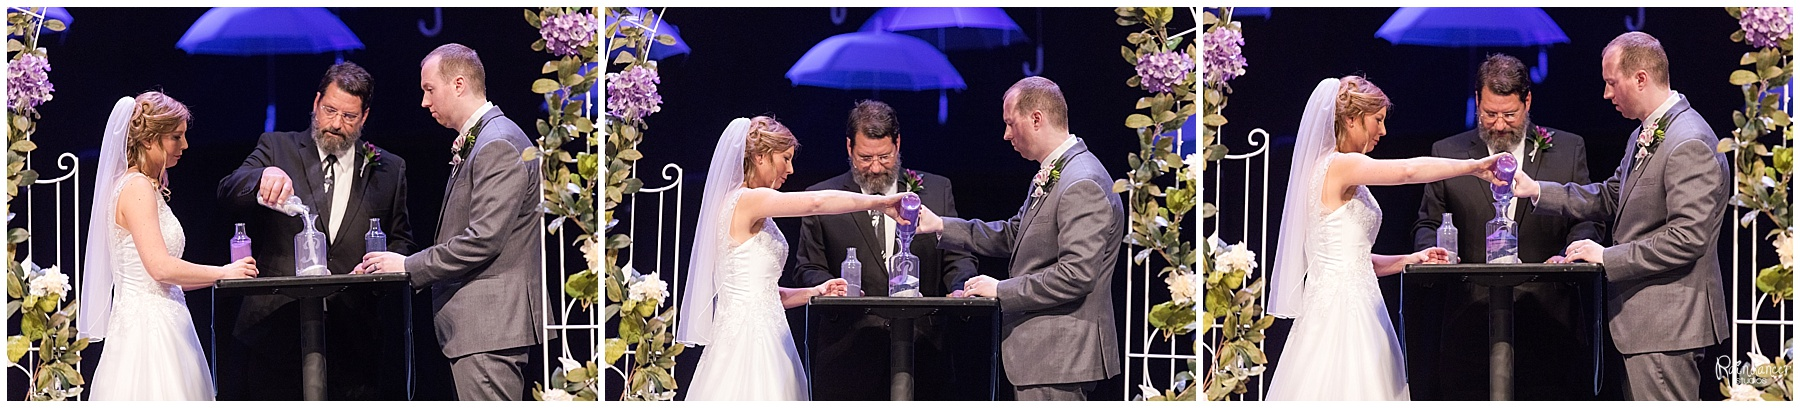 pouring of the sand ceremony by bride and groom by Raindancer Studios Indianapolis Wedding Photographer Jill Howell